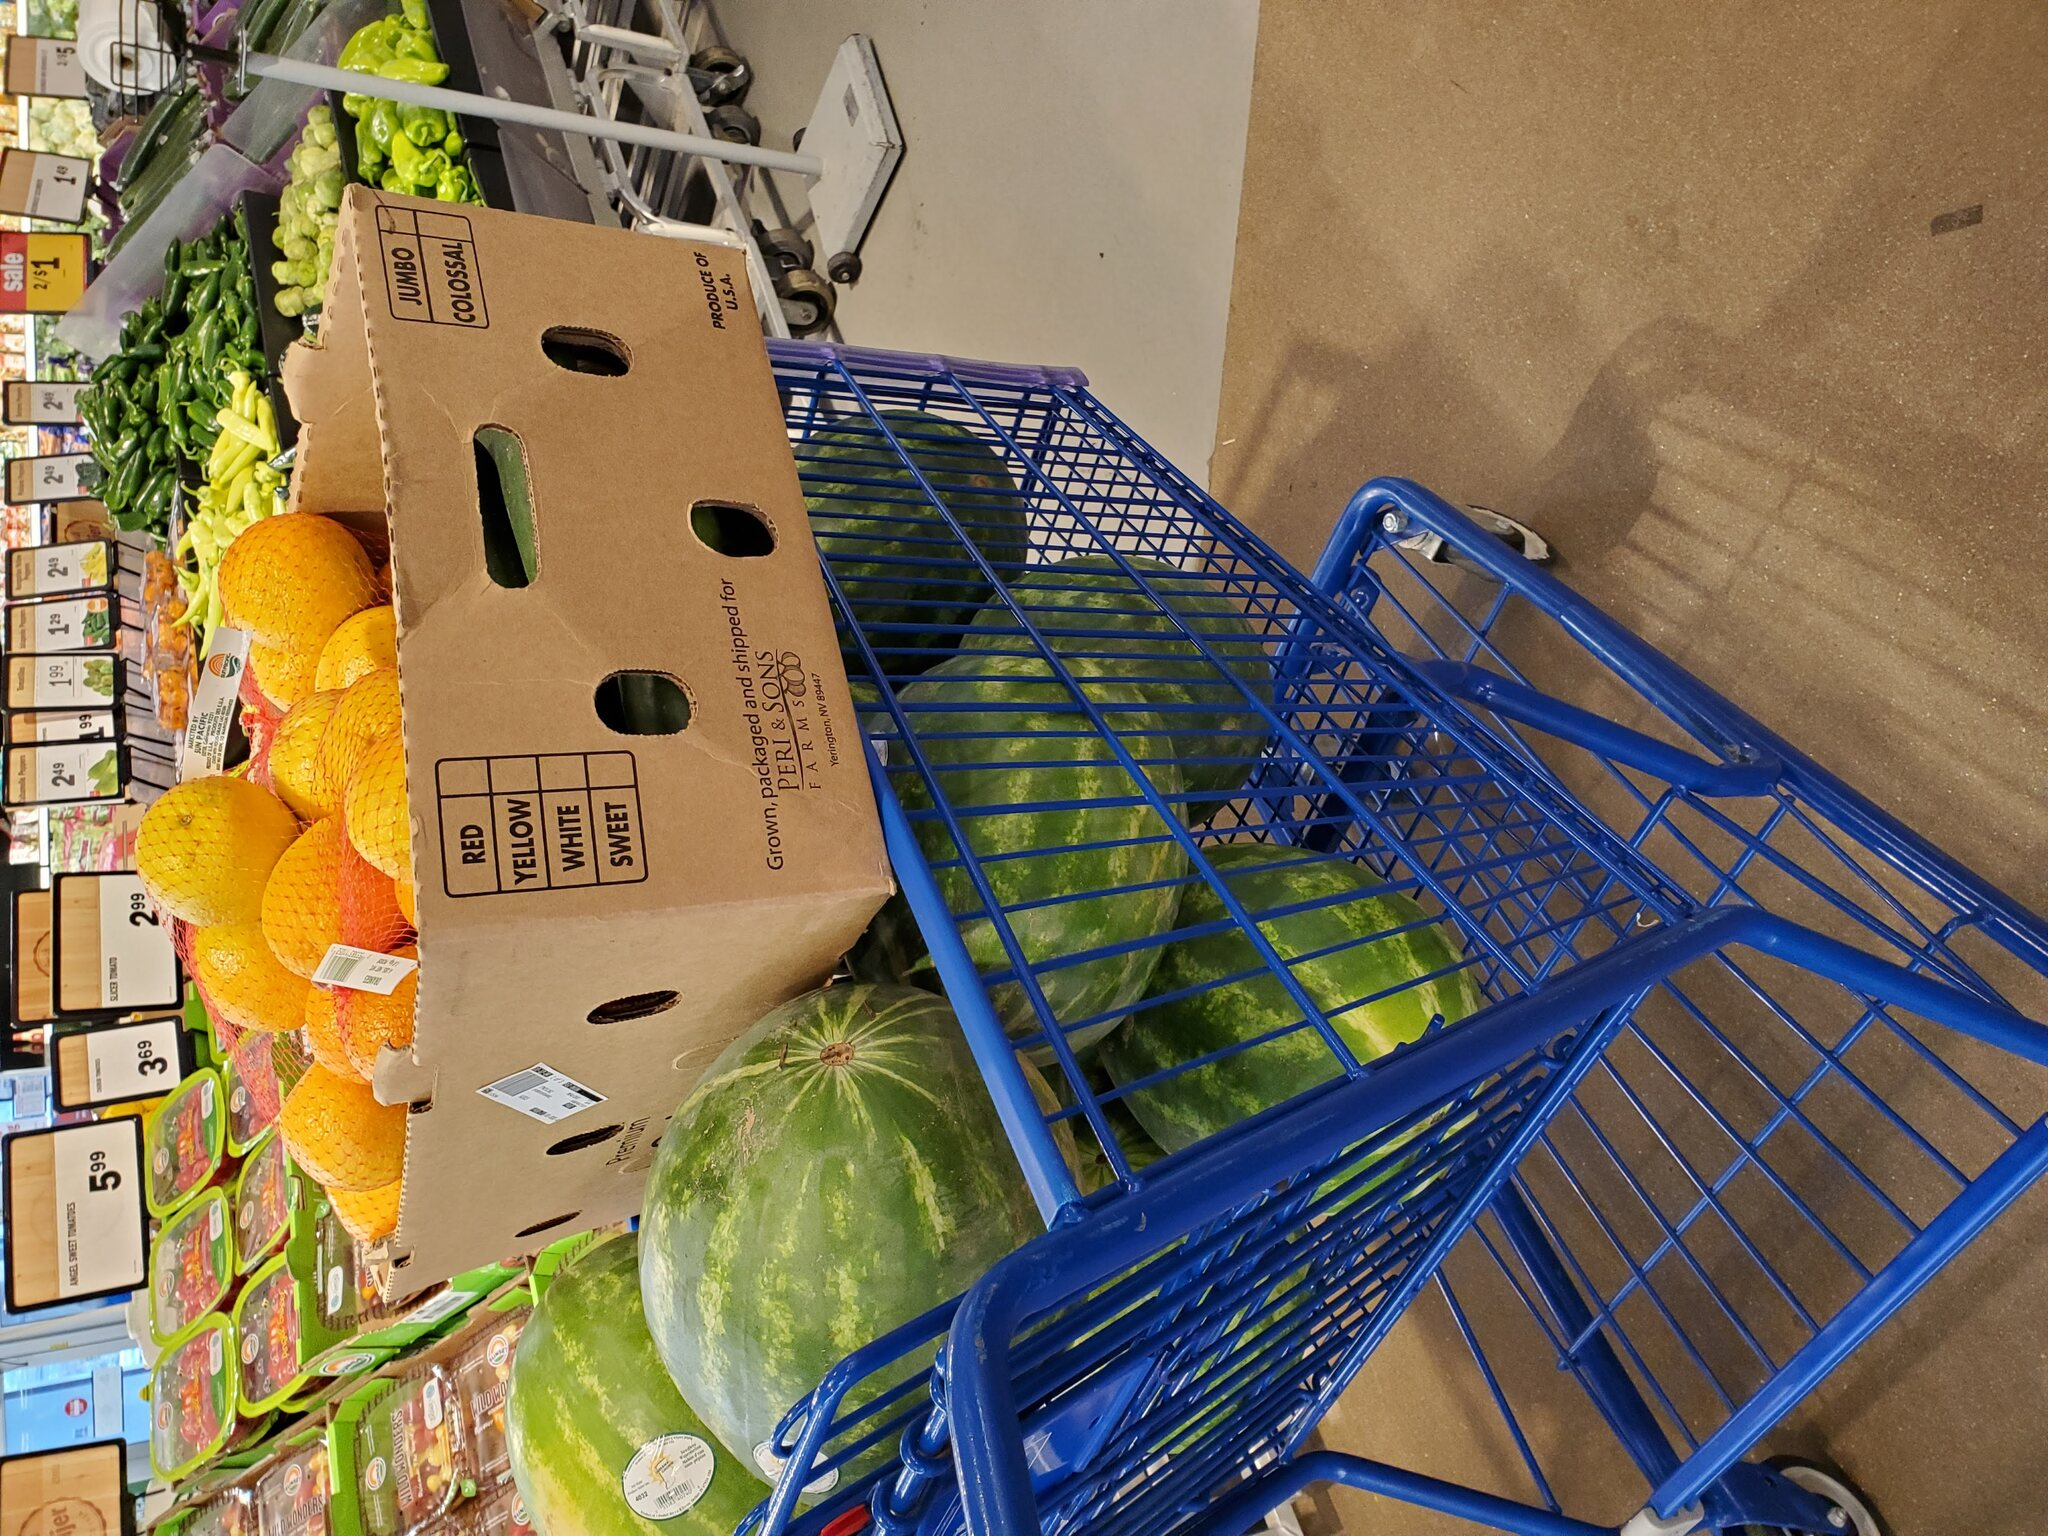 Cart Full of Watermelons, Oranges, and Cucumbers